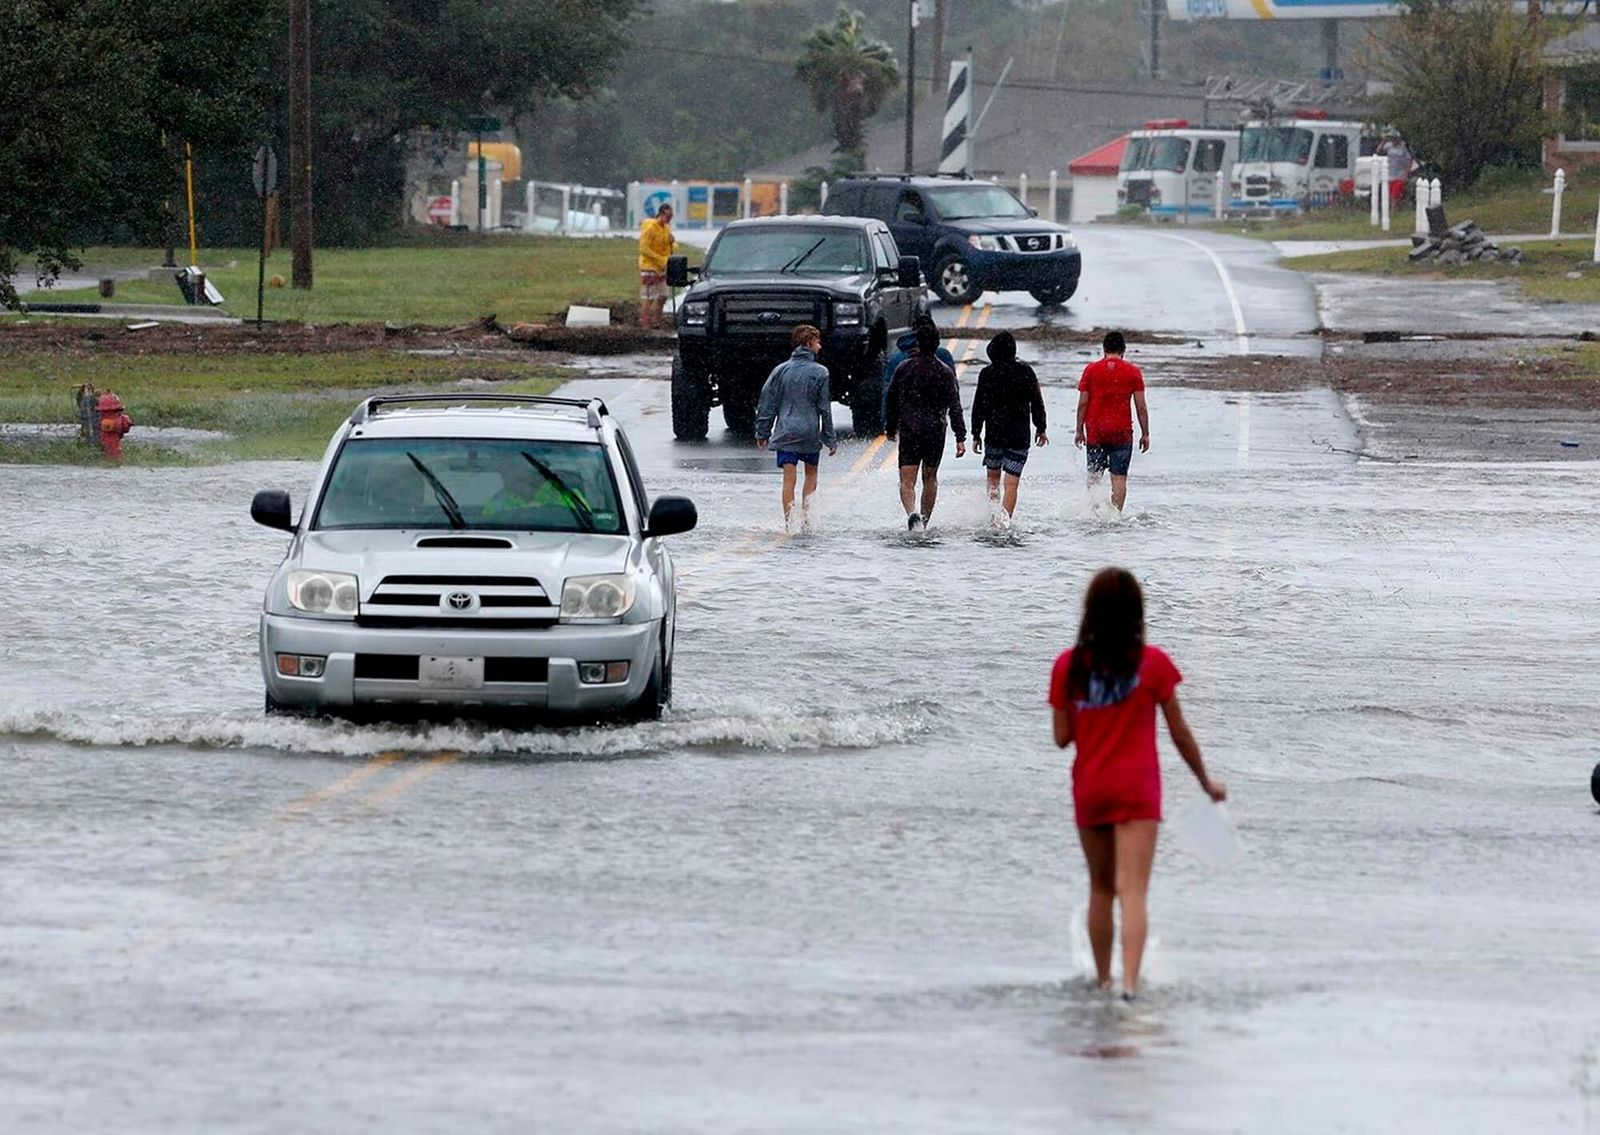 Residents walk and drive through the receding flood waters in Buxton, N.C., after Hurricane Dorian leaves Hatteras Island on Friday, Sept. 6, 2019. (Steve Earley/The Virginian-Pilot via AP)